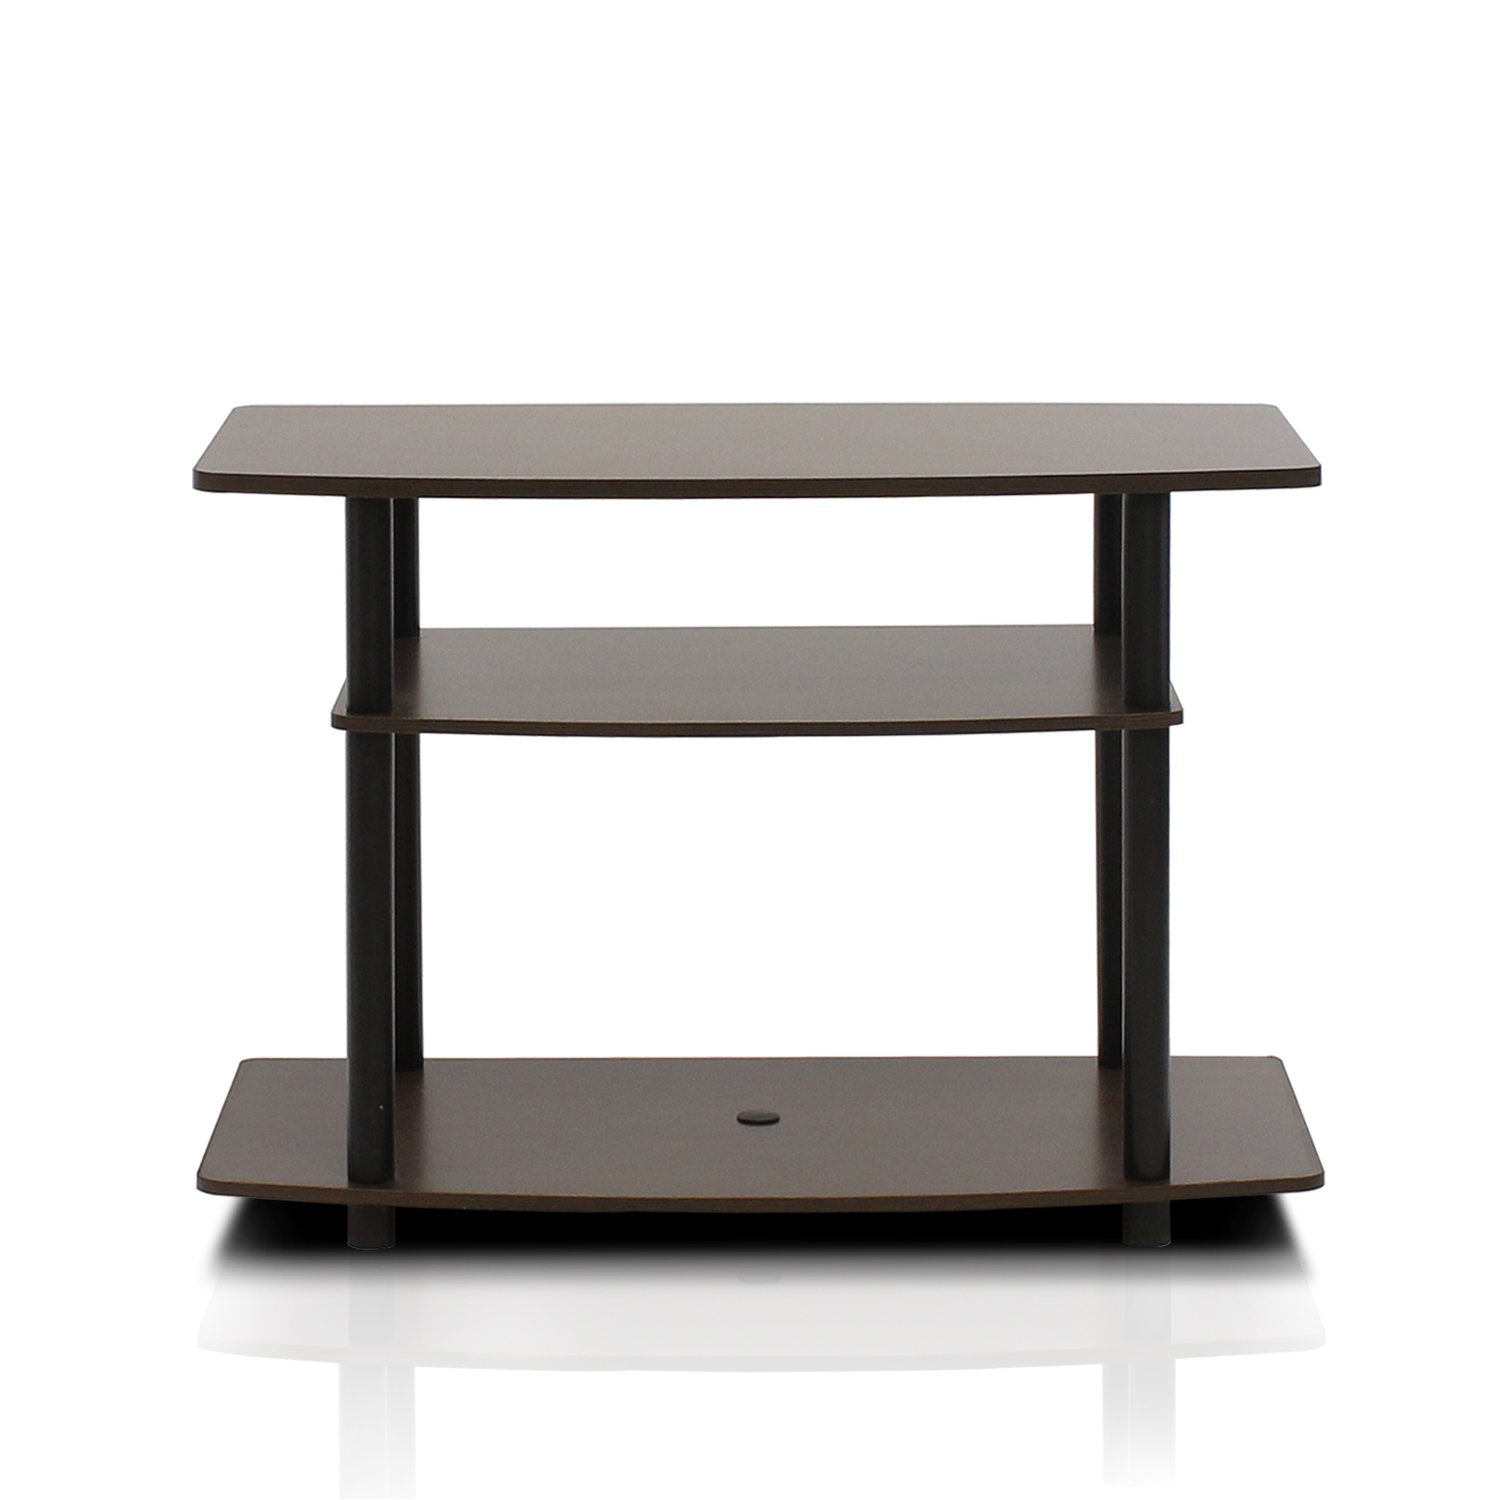 FURINNO 13192EX/BK Turn-N-Tube 3-Tier TV Stand, Espresso/Black by Furinno